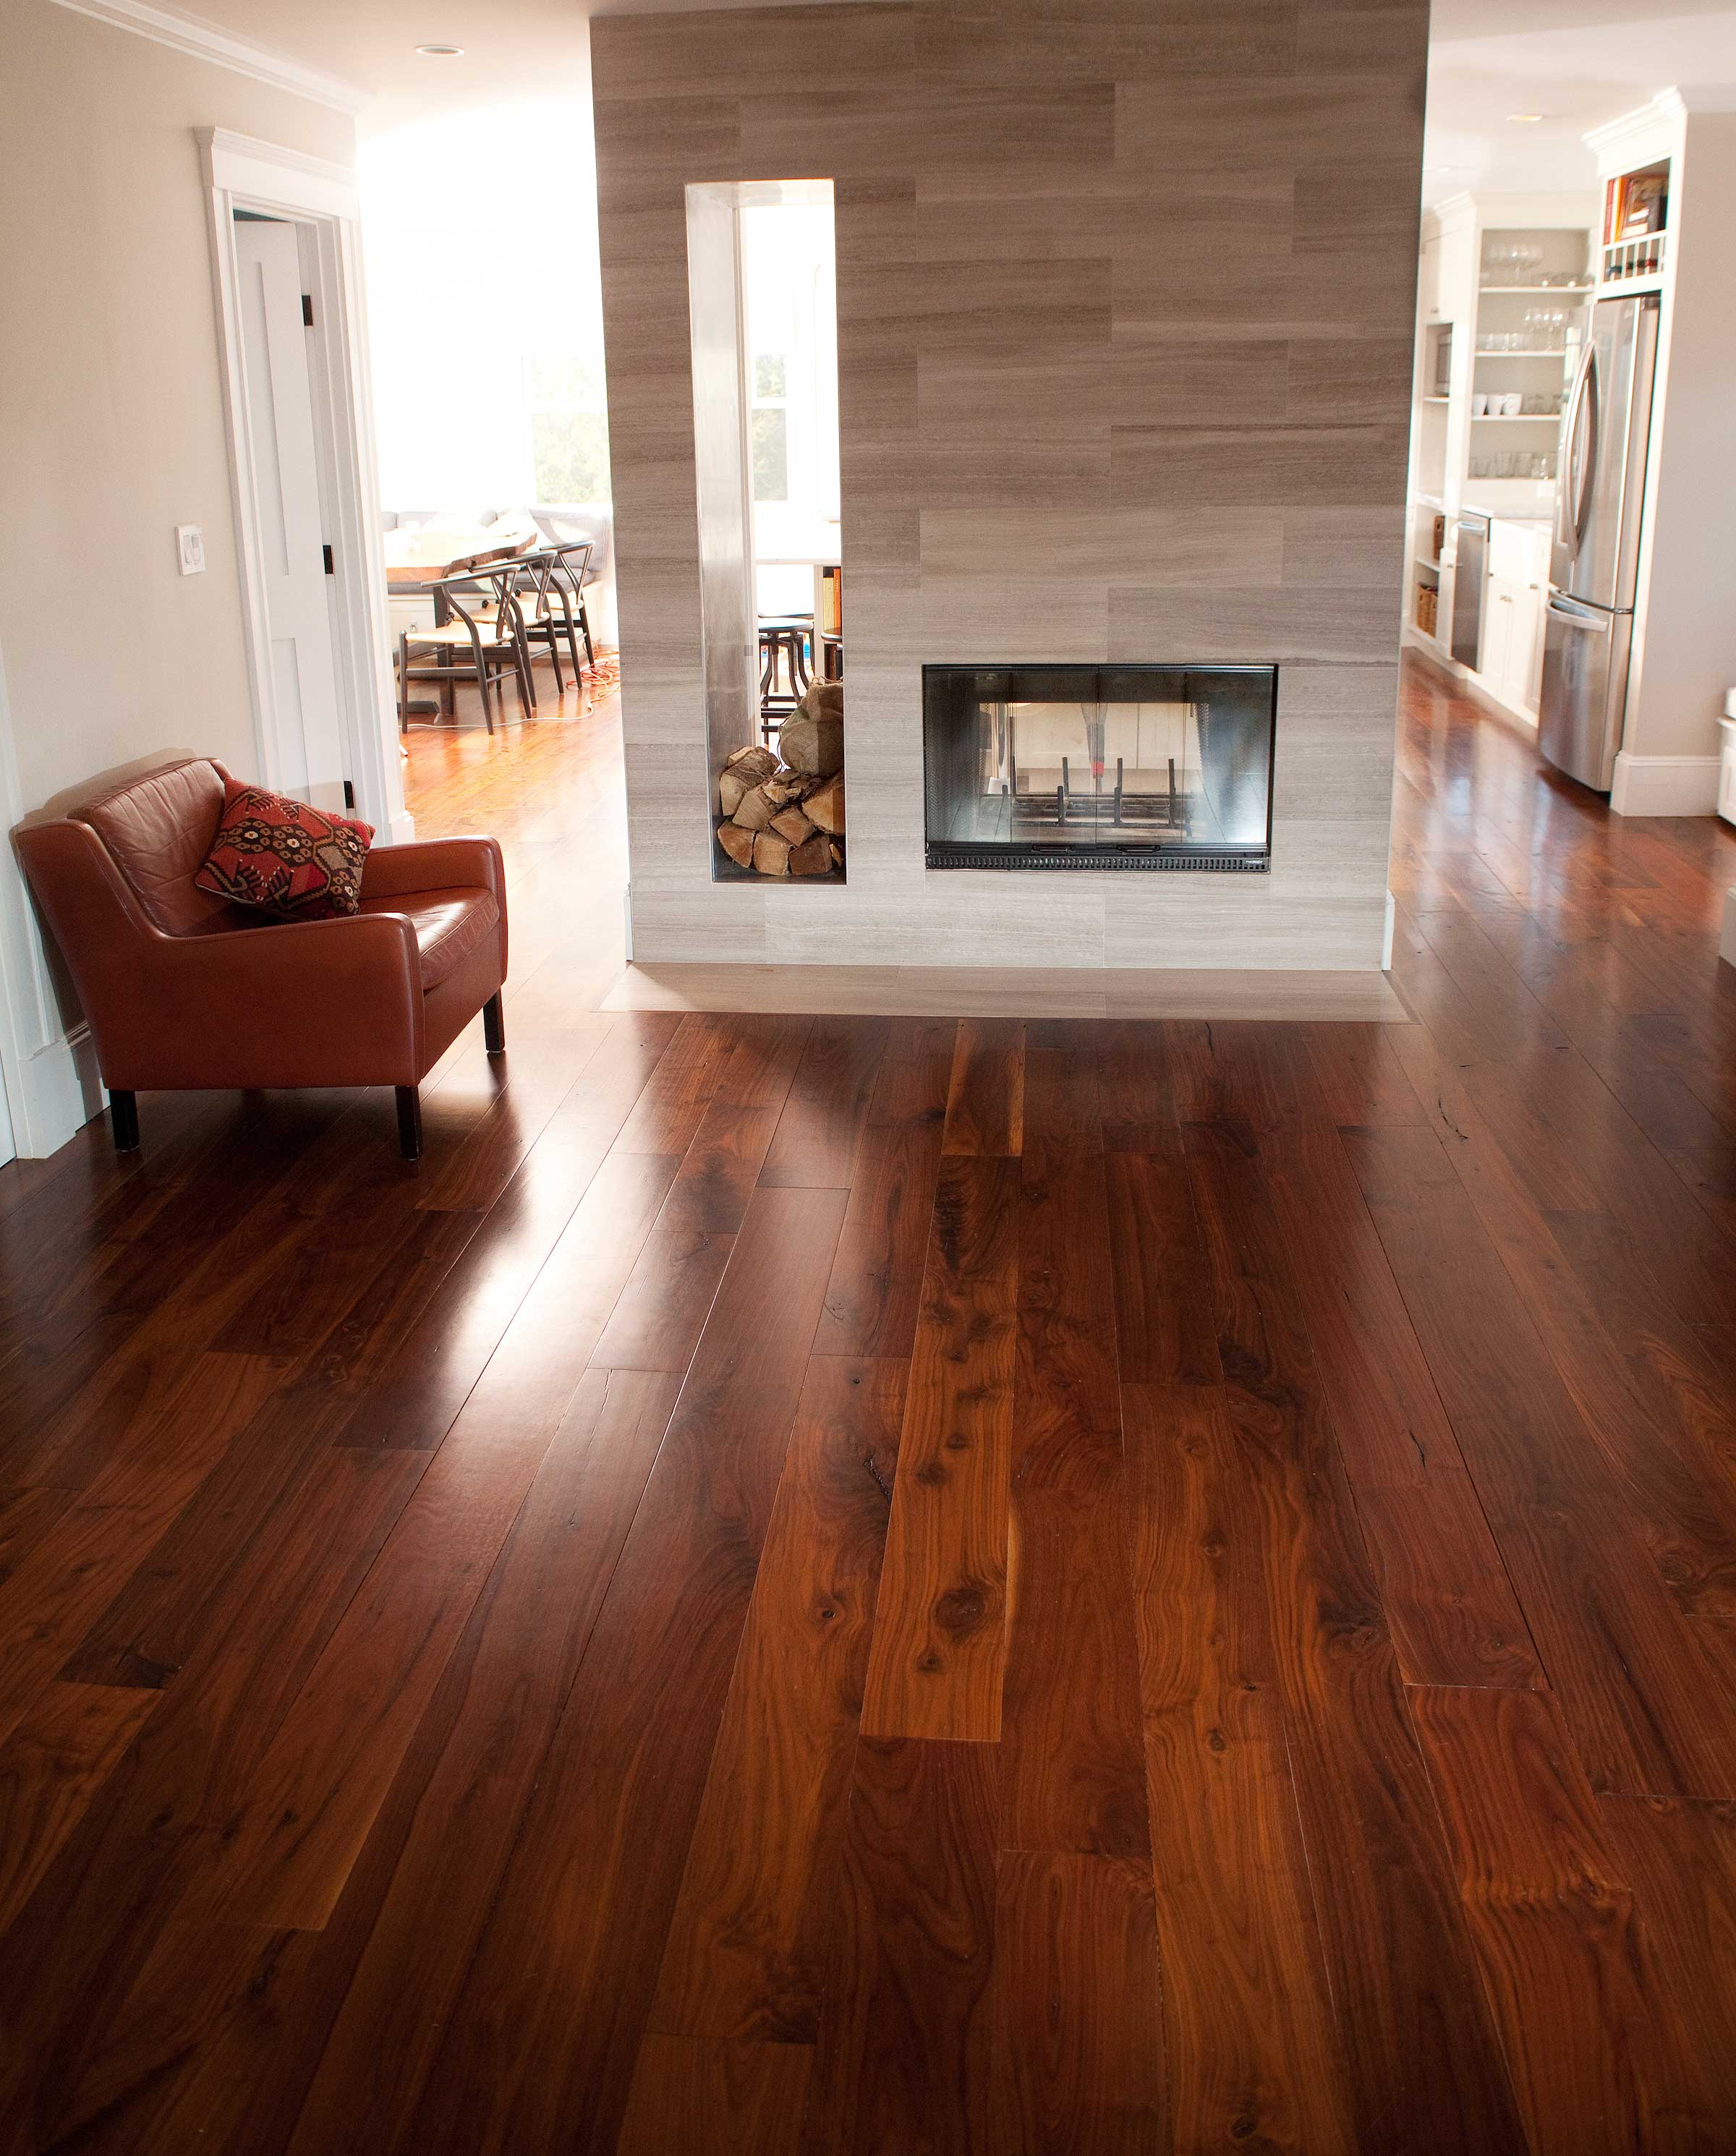 Walnut flooring: an interesting option